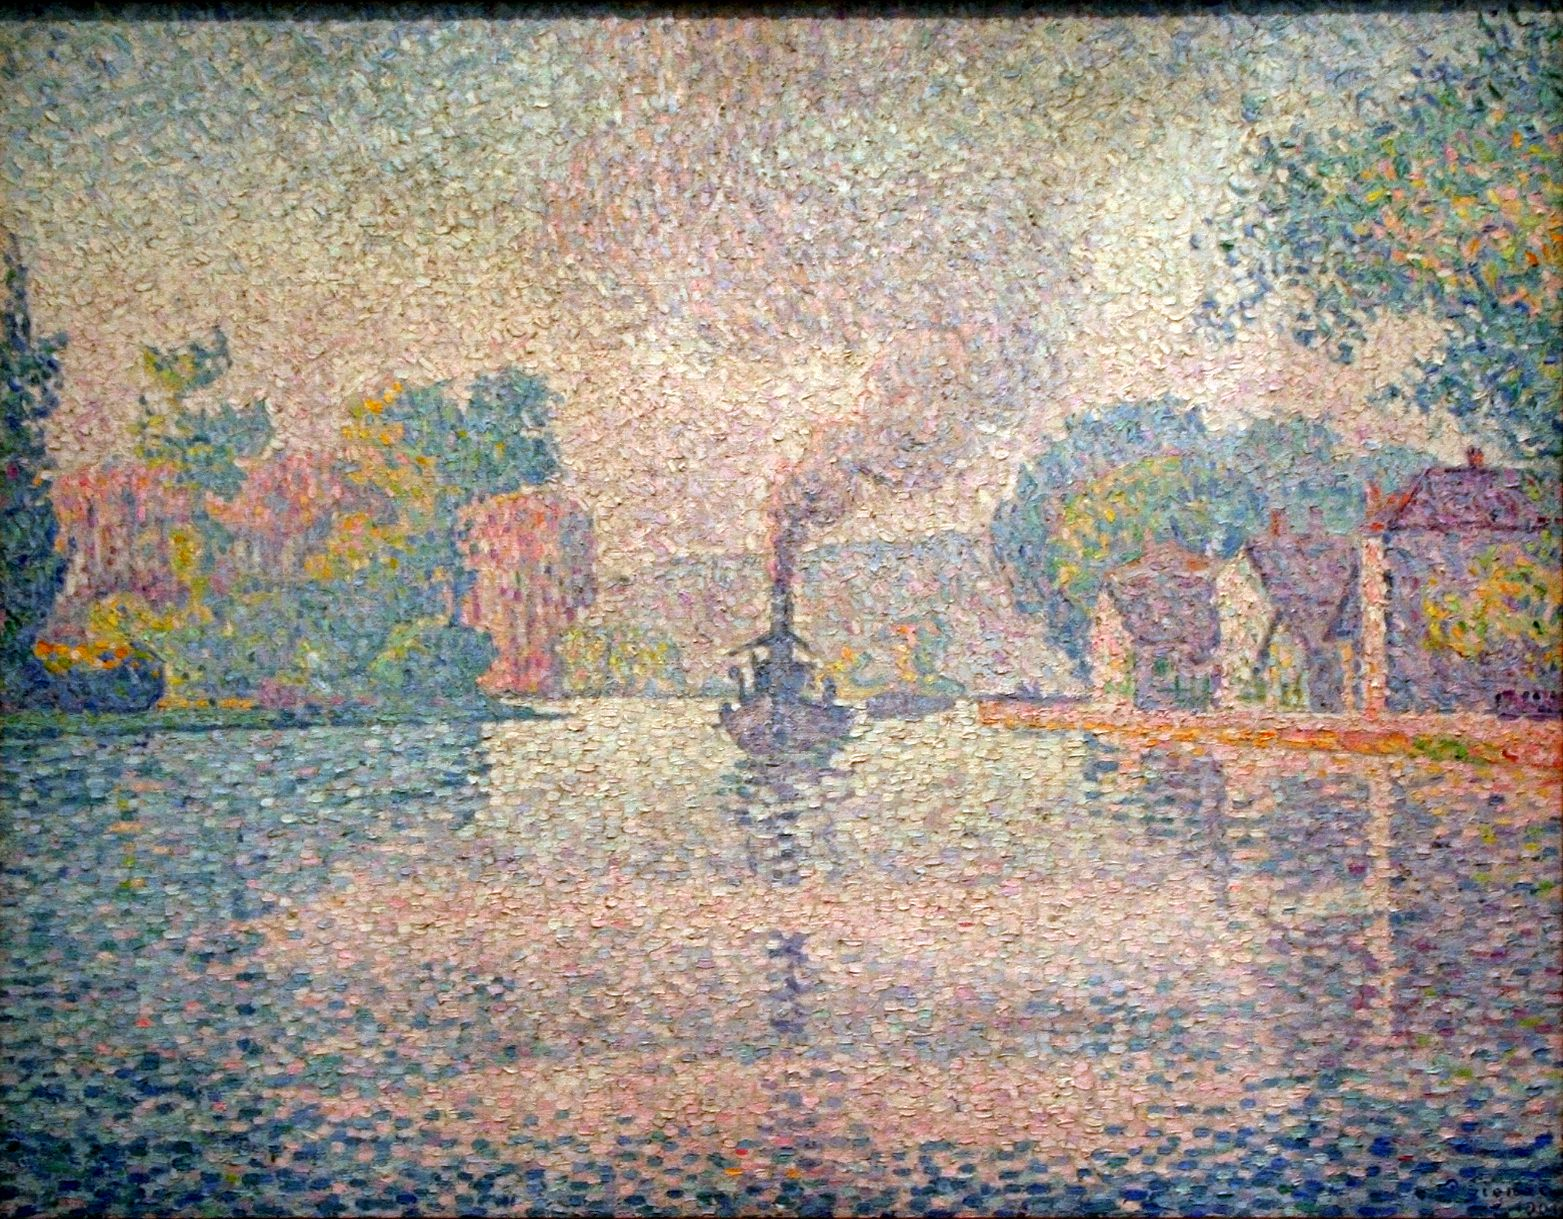 impressionism essay tips about art history neo impressionism and the artists behind the movement